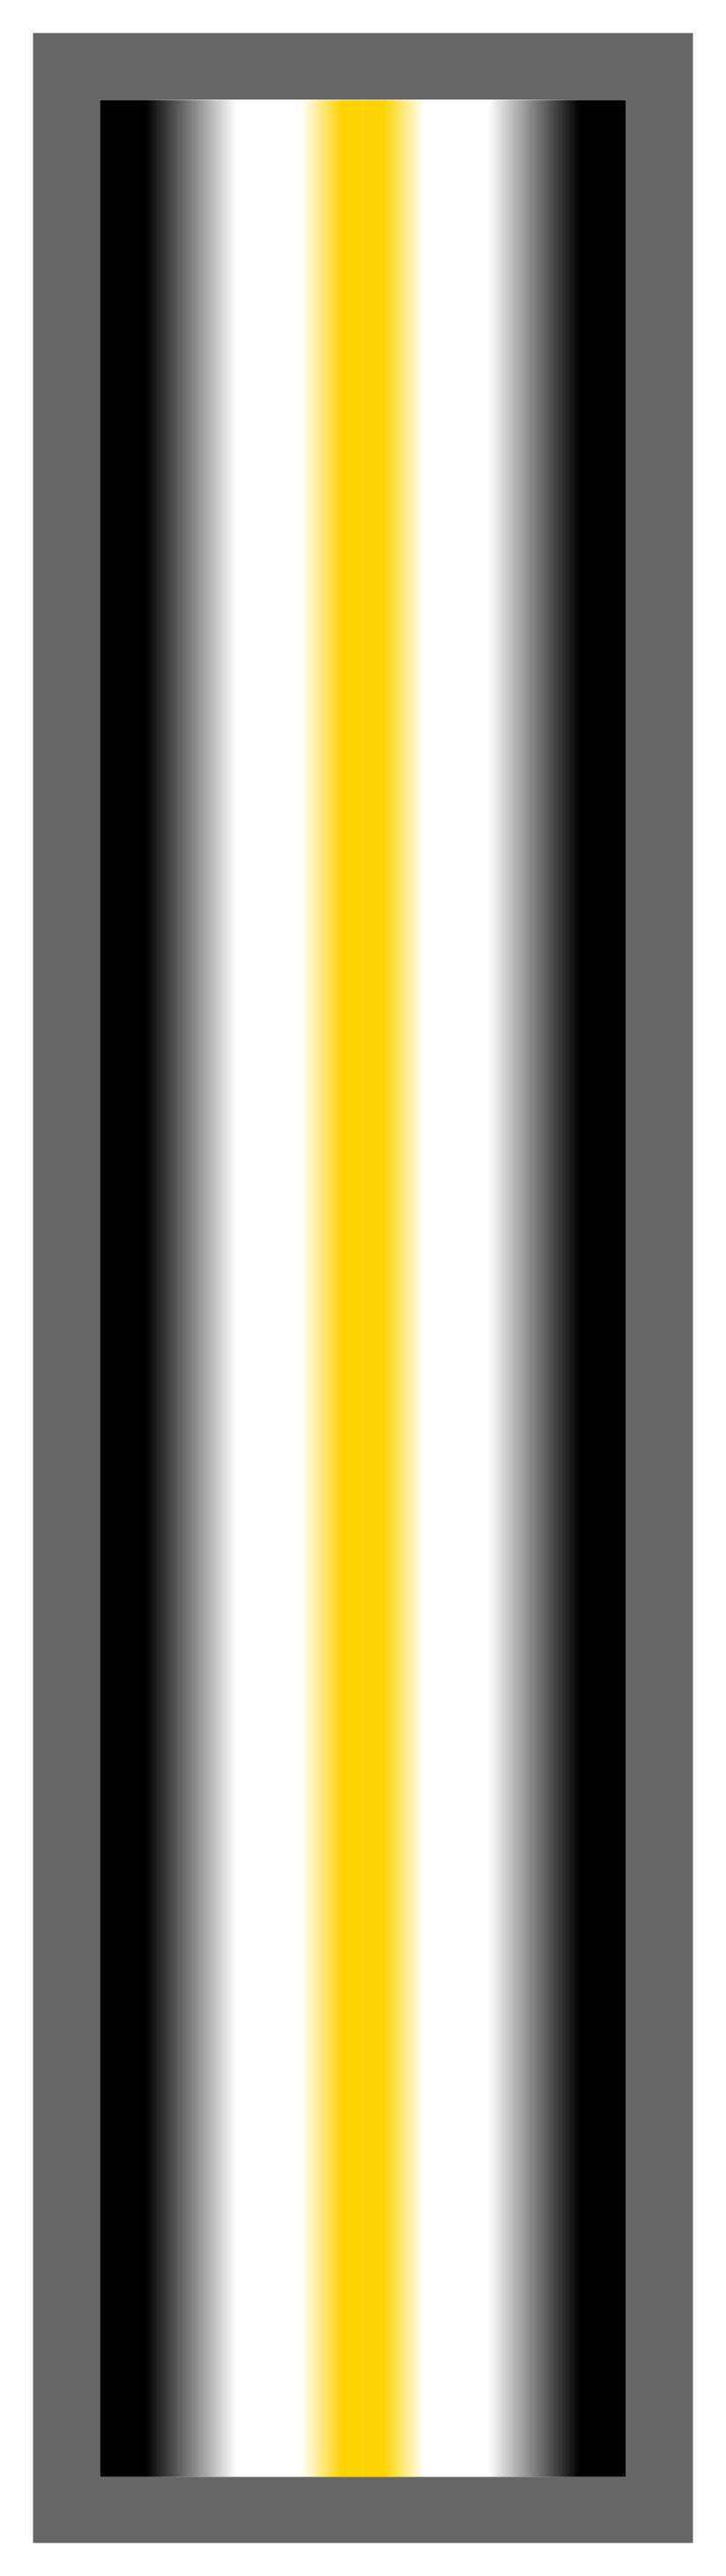 Black-White-Yellow Ombre Stripe